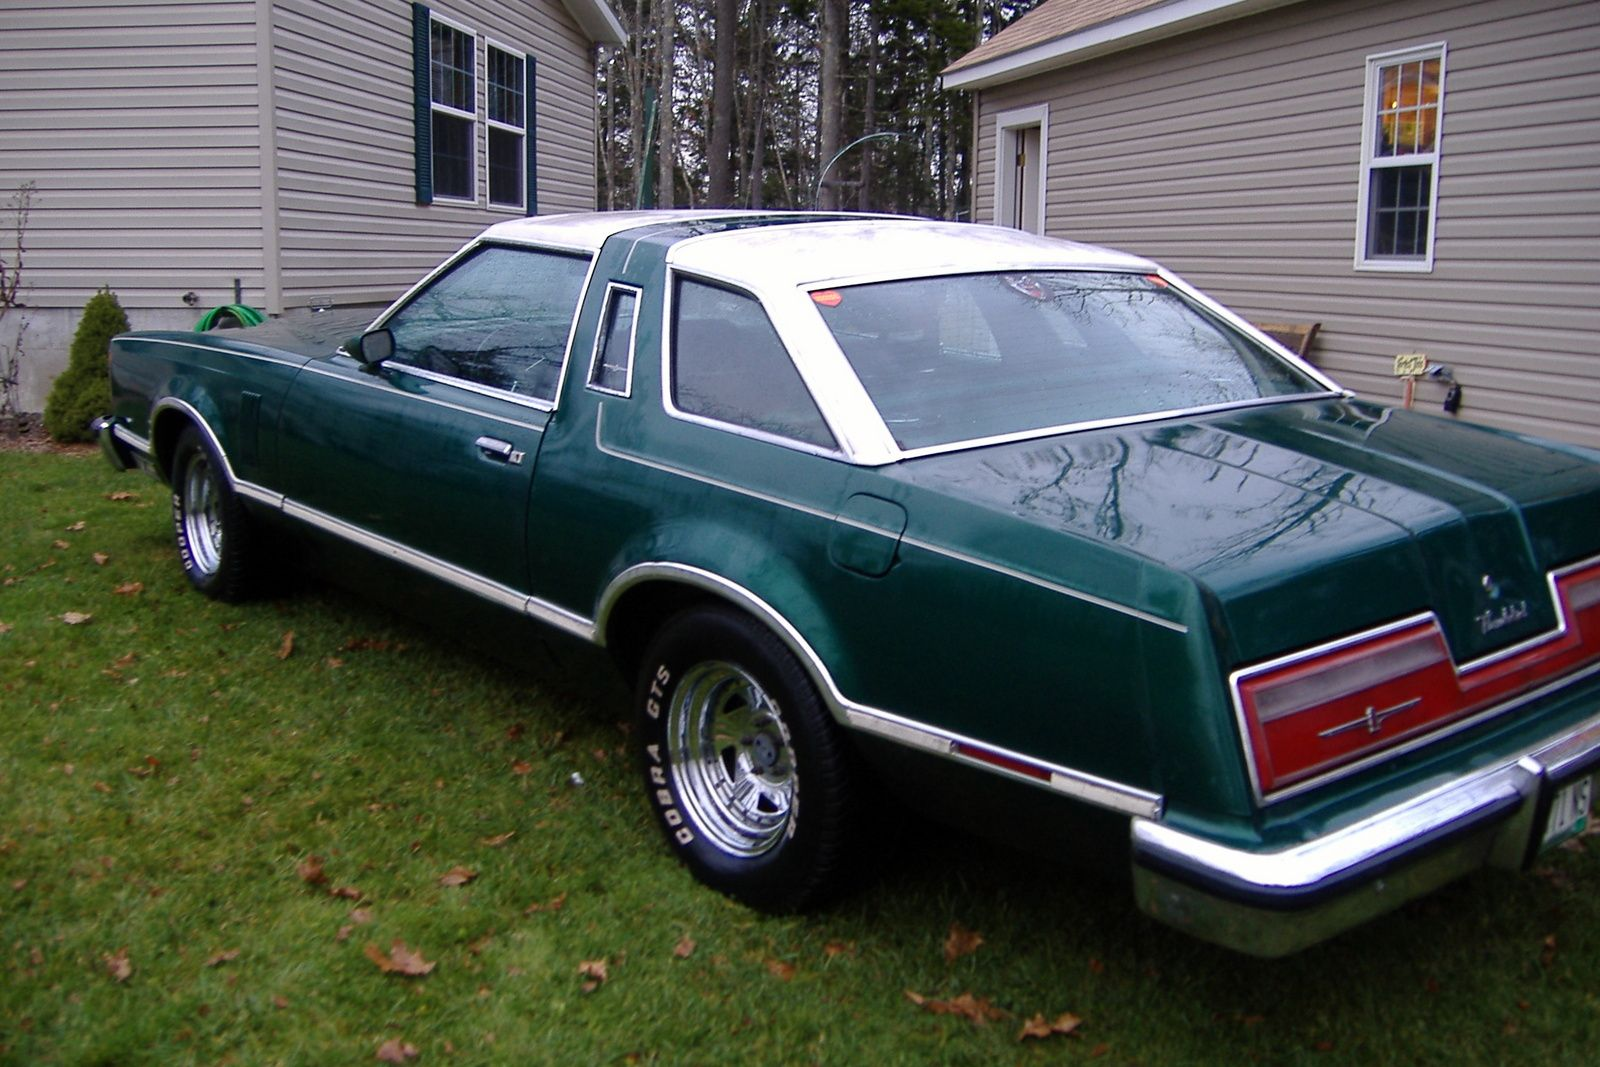 small resolution of blacktie64 s 1977 ford thunderbird my grandma had one just like it spartan green with white leather seats need me one